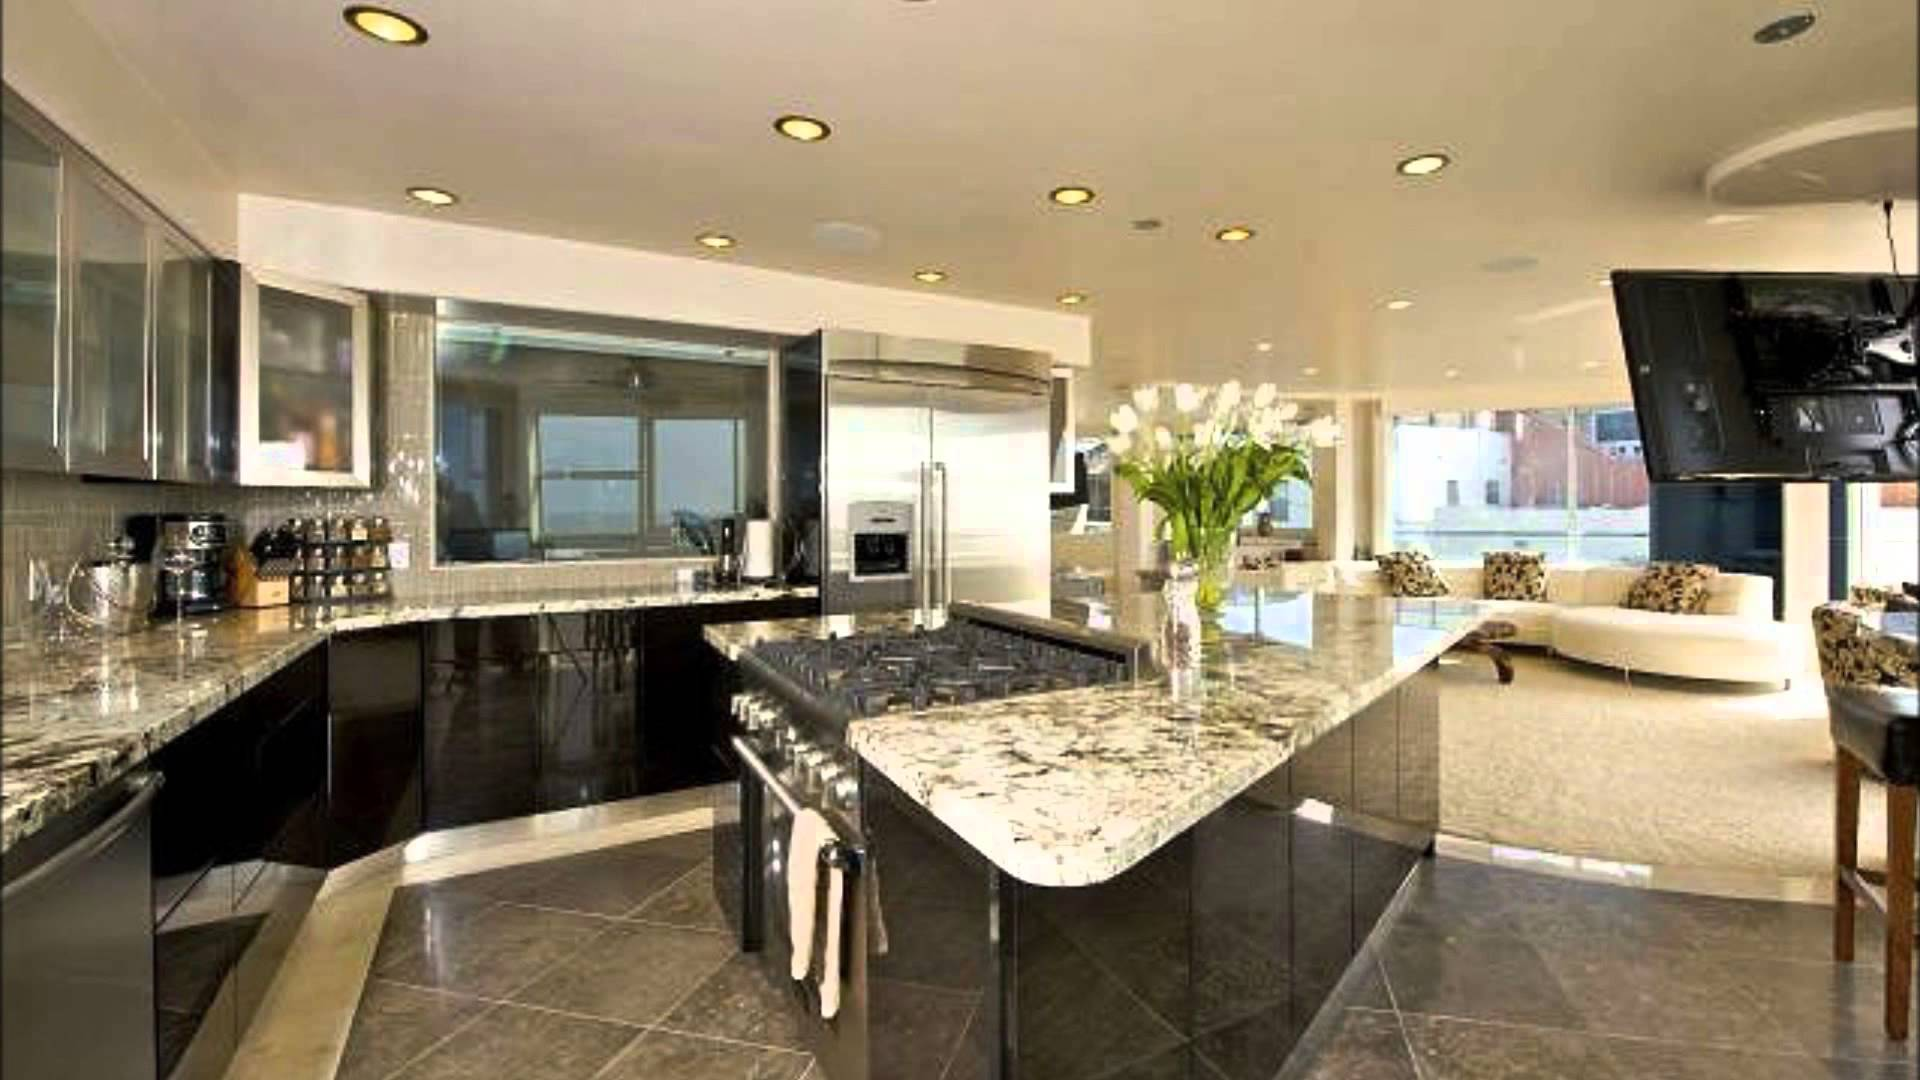 Design your own kitchen ideas with images Kitchen cabinets design your own